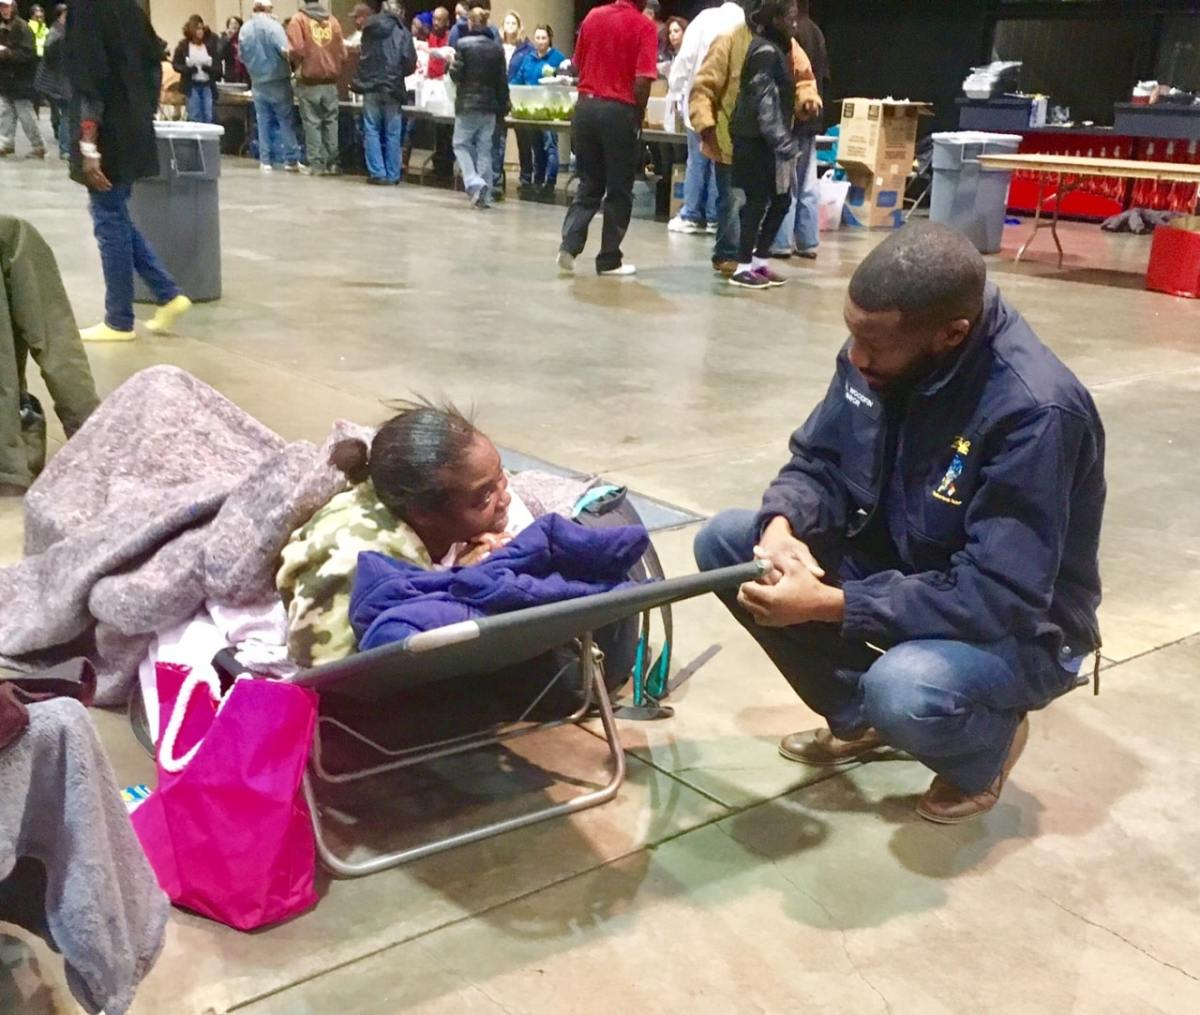 Birmingham warming stations extend hours and need help